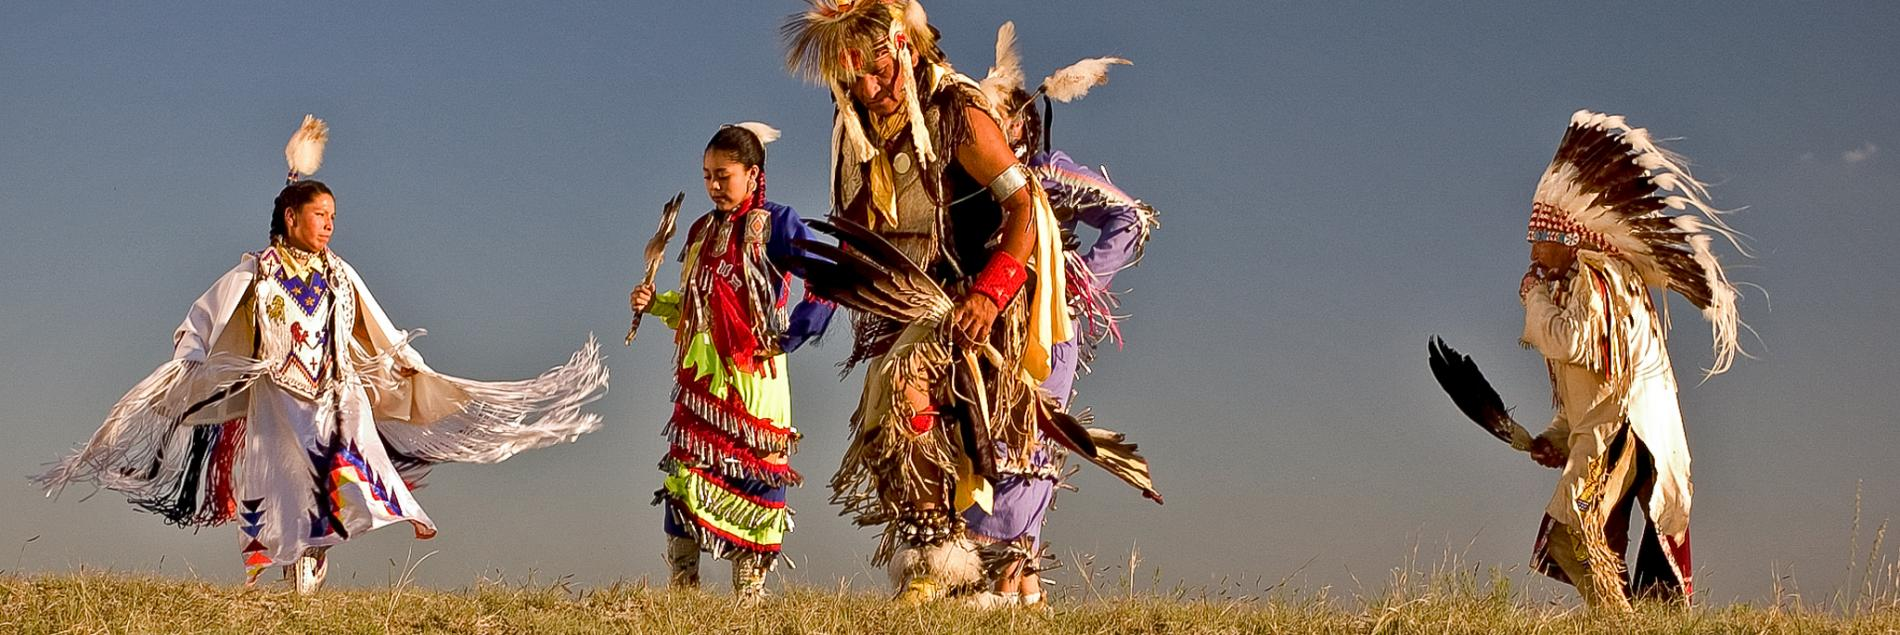 Lakota Sioux Culture